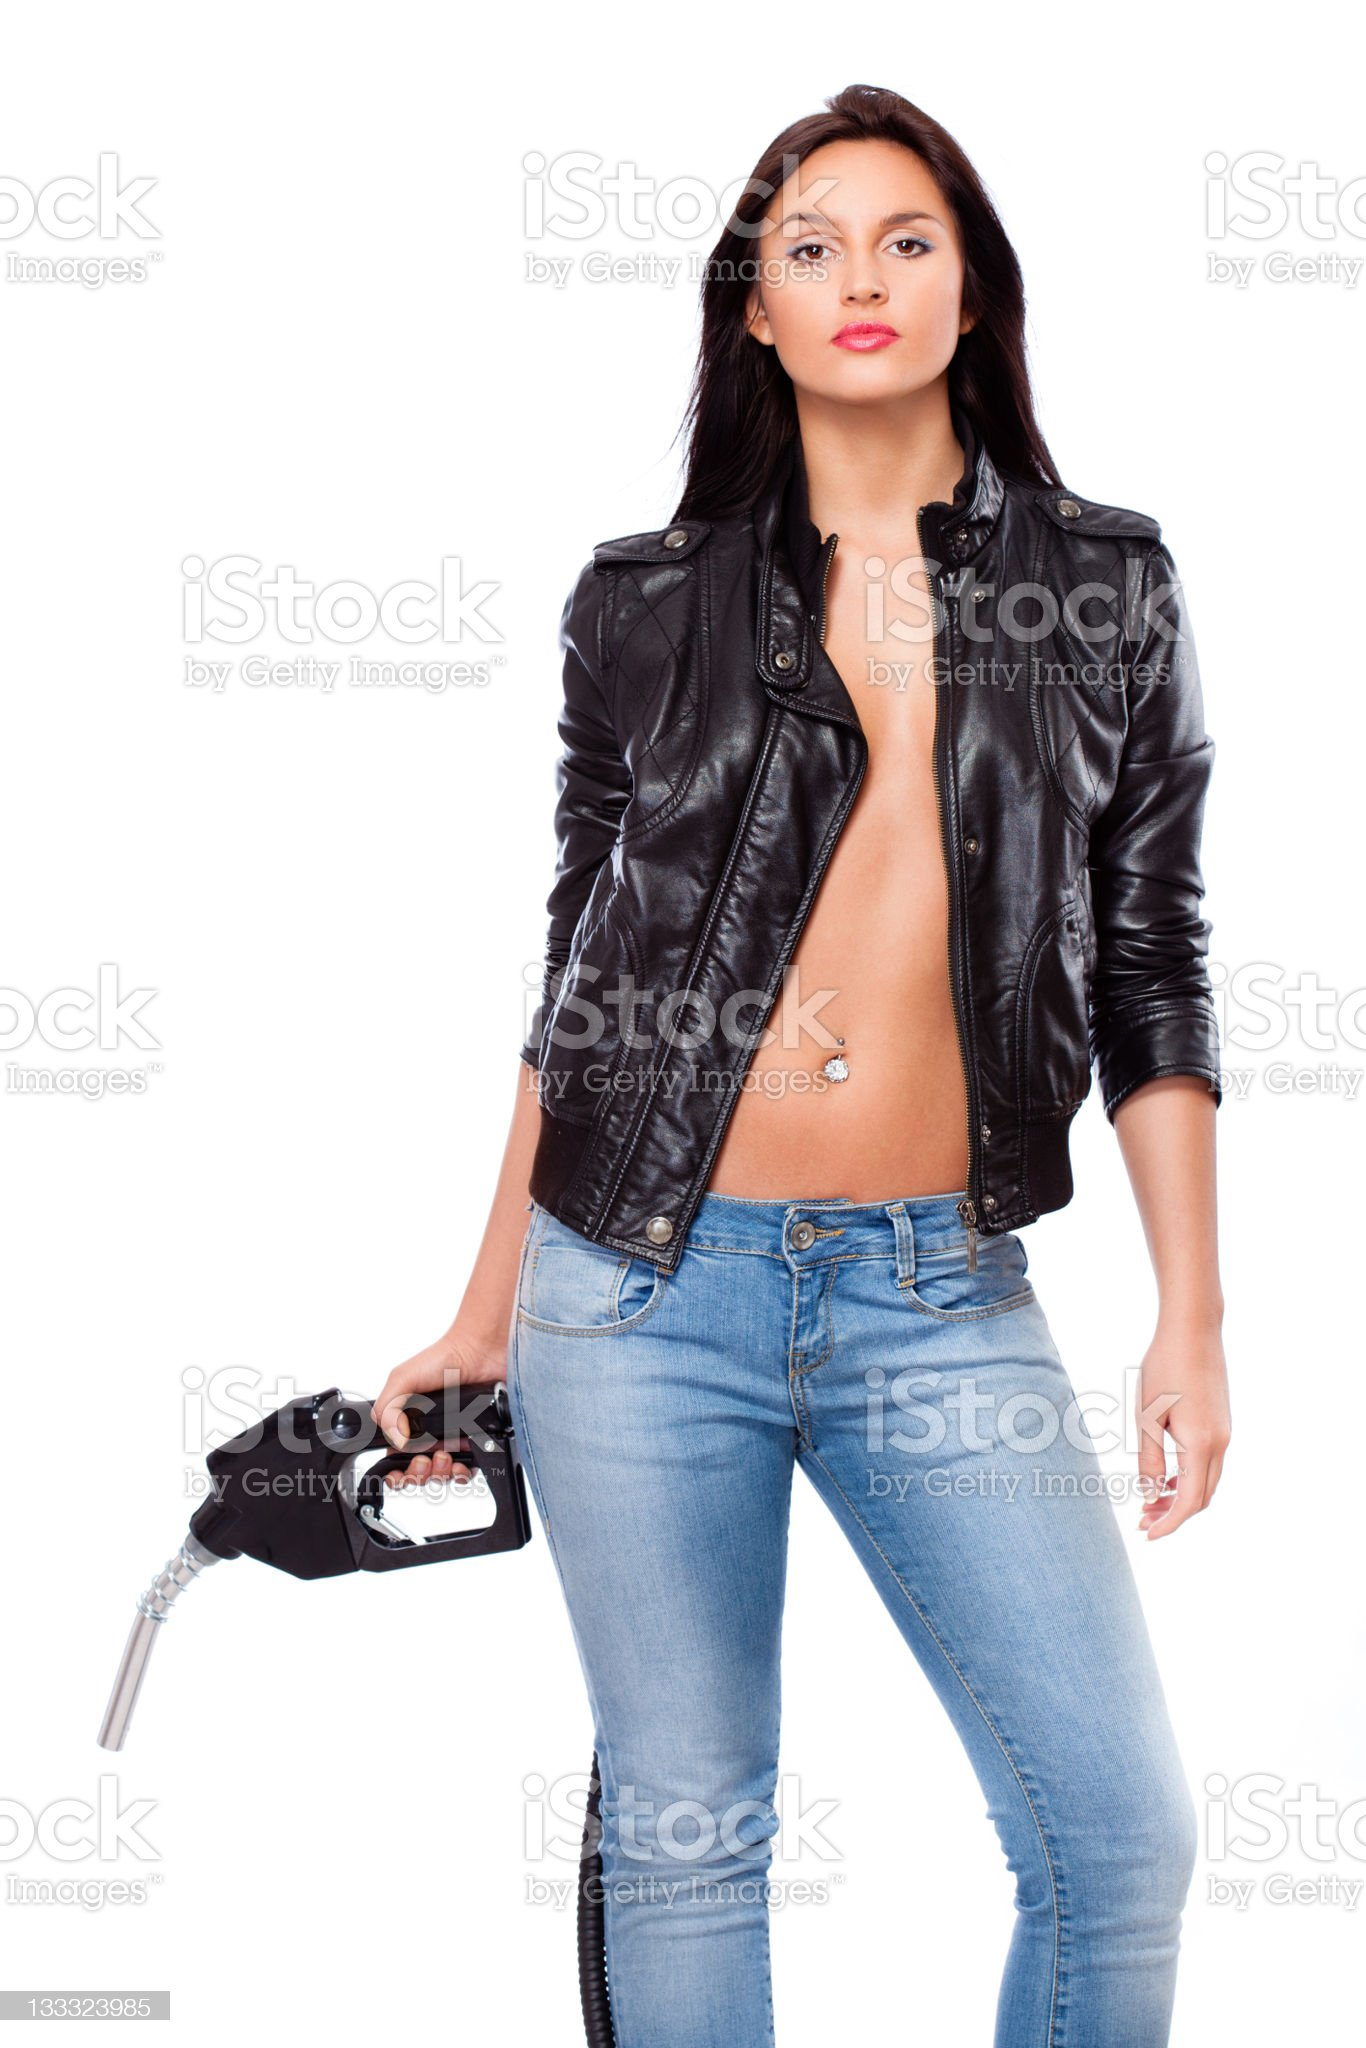 woman with nozzle royalty-free stock photo